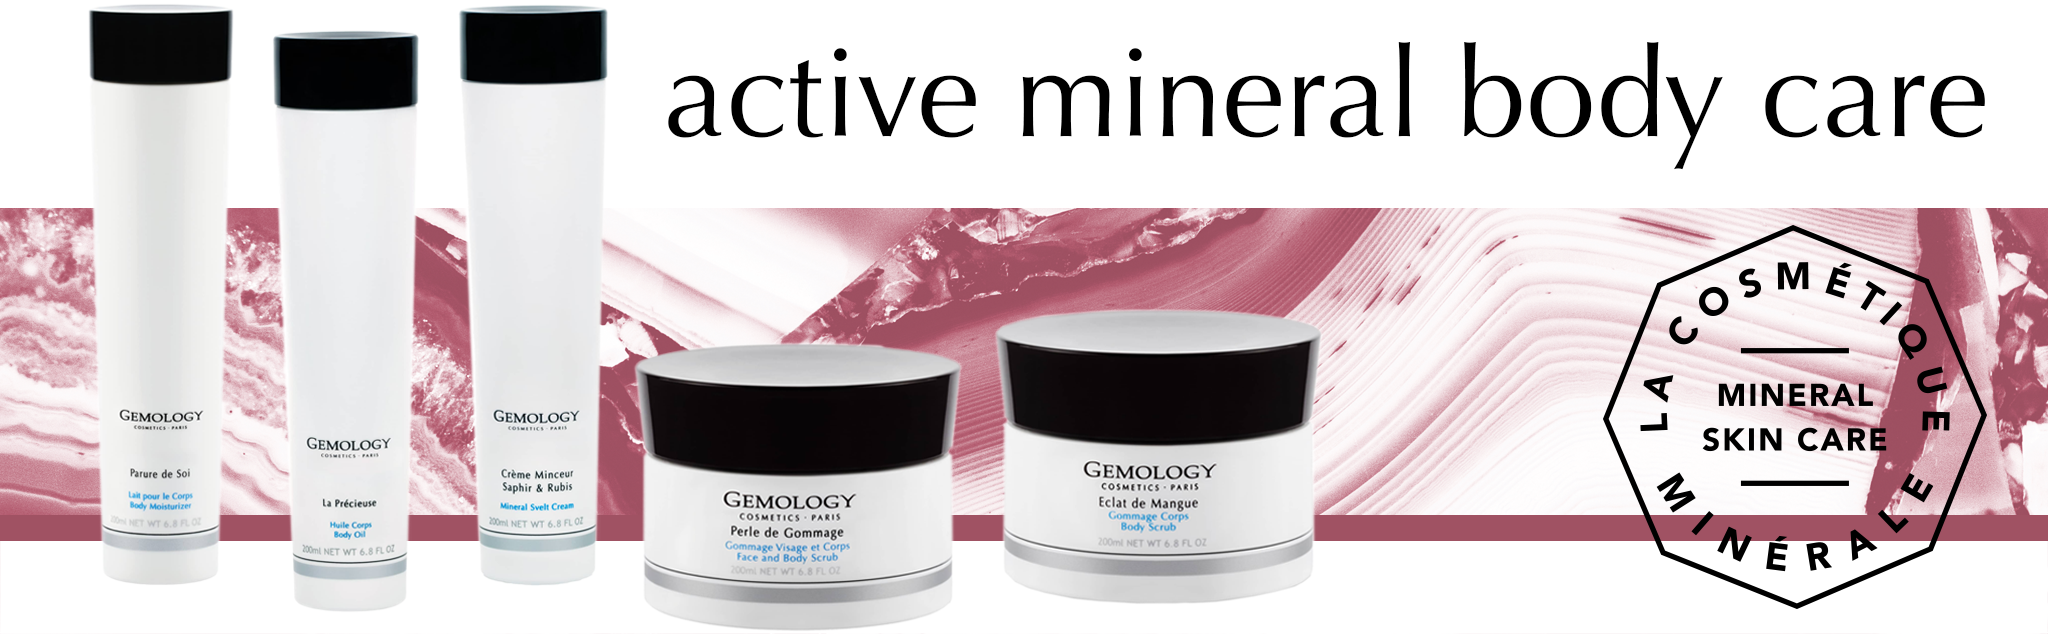 Gemology-cosmetics-paris-active-mineral-body-care-skincare-products-australia-new-zealand